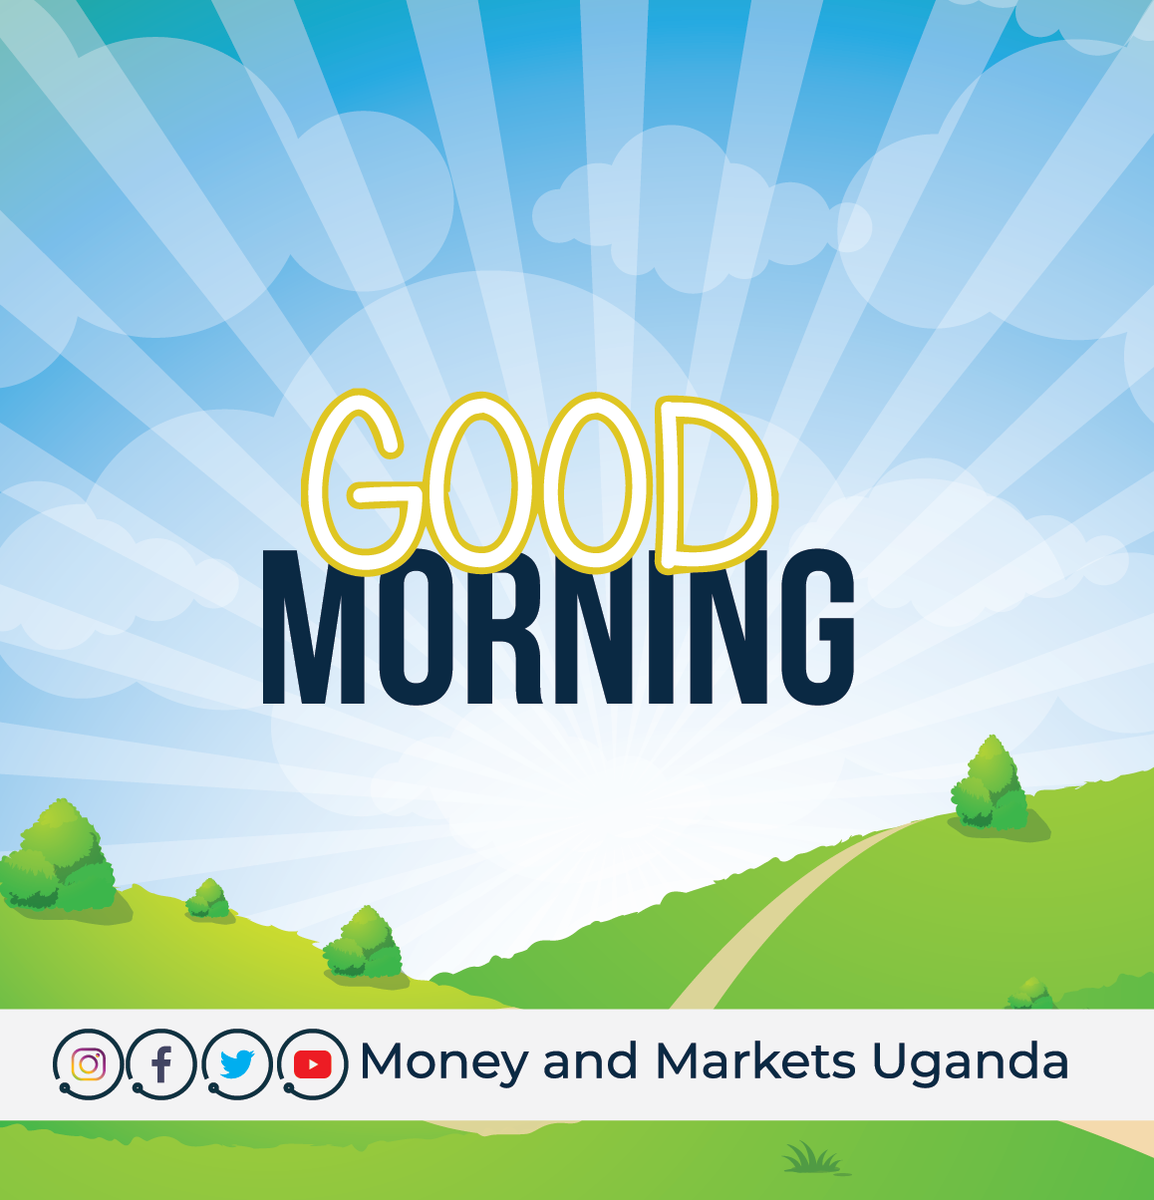 Success usually comes to those who are too busy to be looking for it, GOOD MORNING #ntvmoneyandmarkets #NTVNews #renatedmediapic.twitter.com/1I9t4waPlK